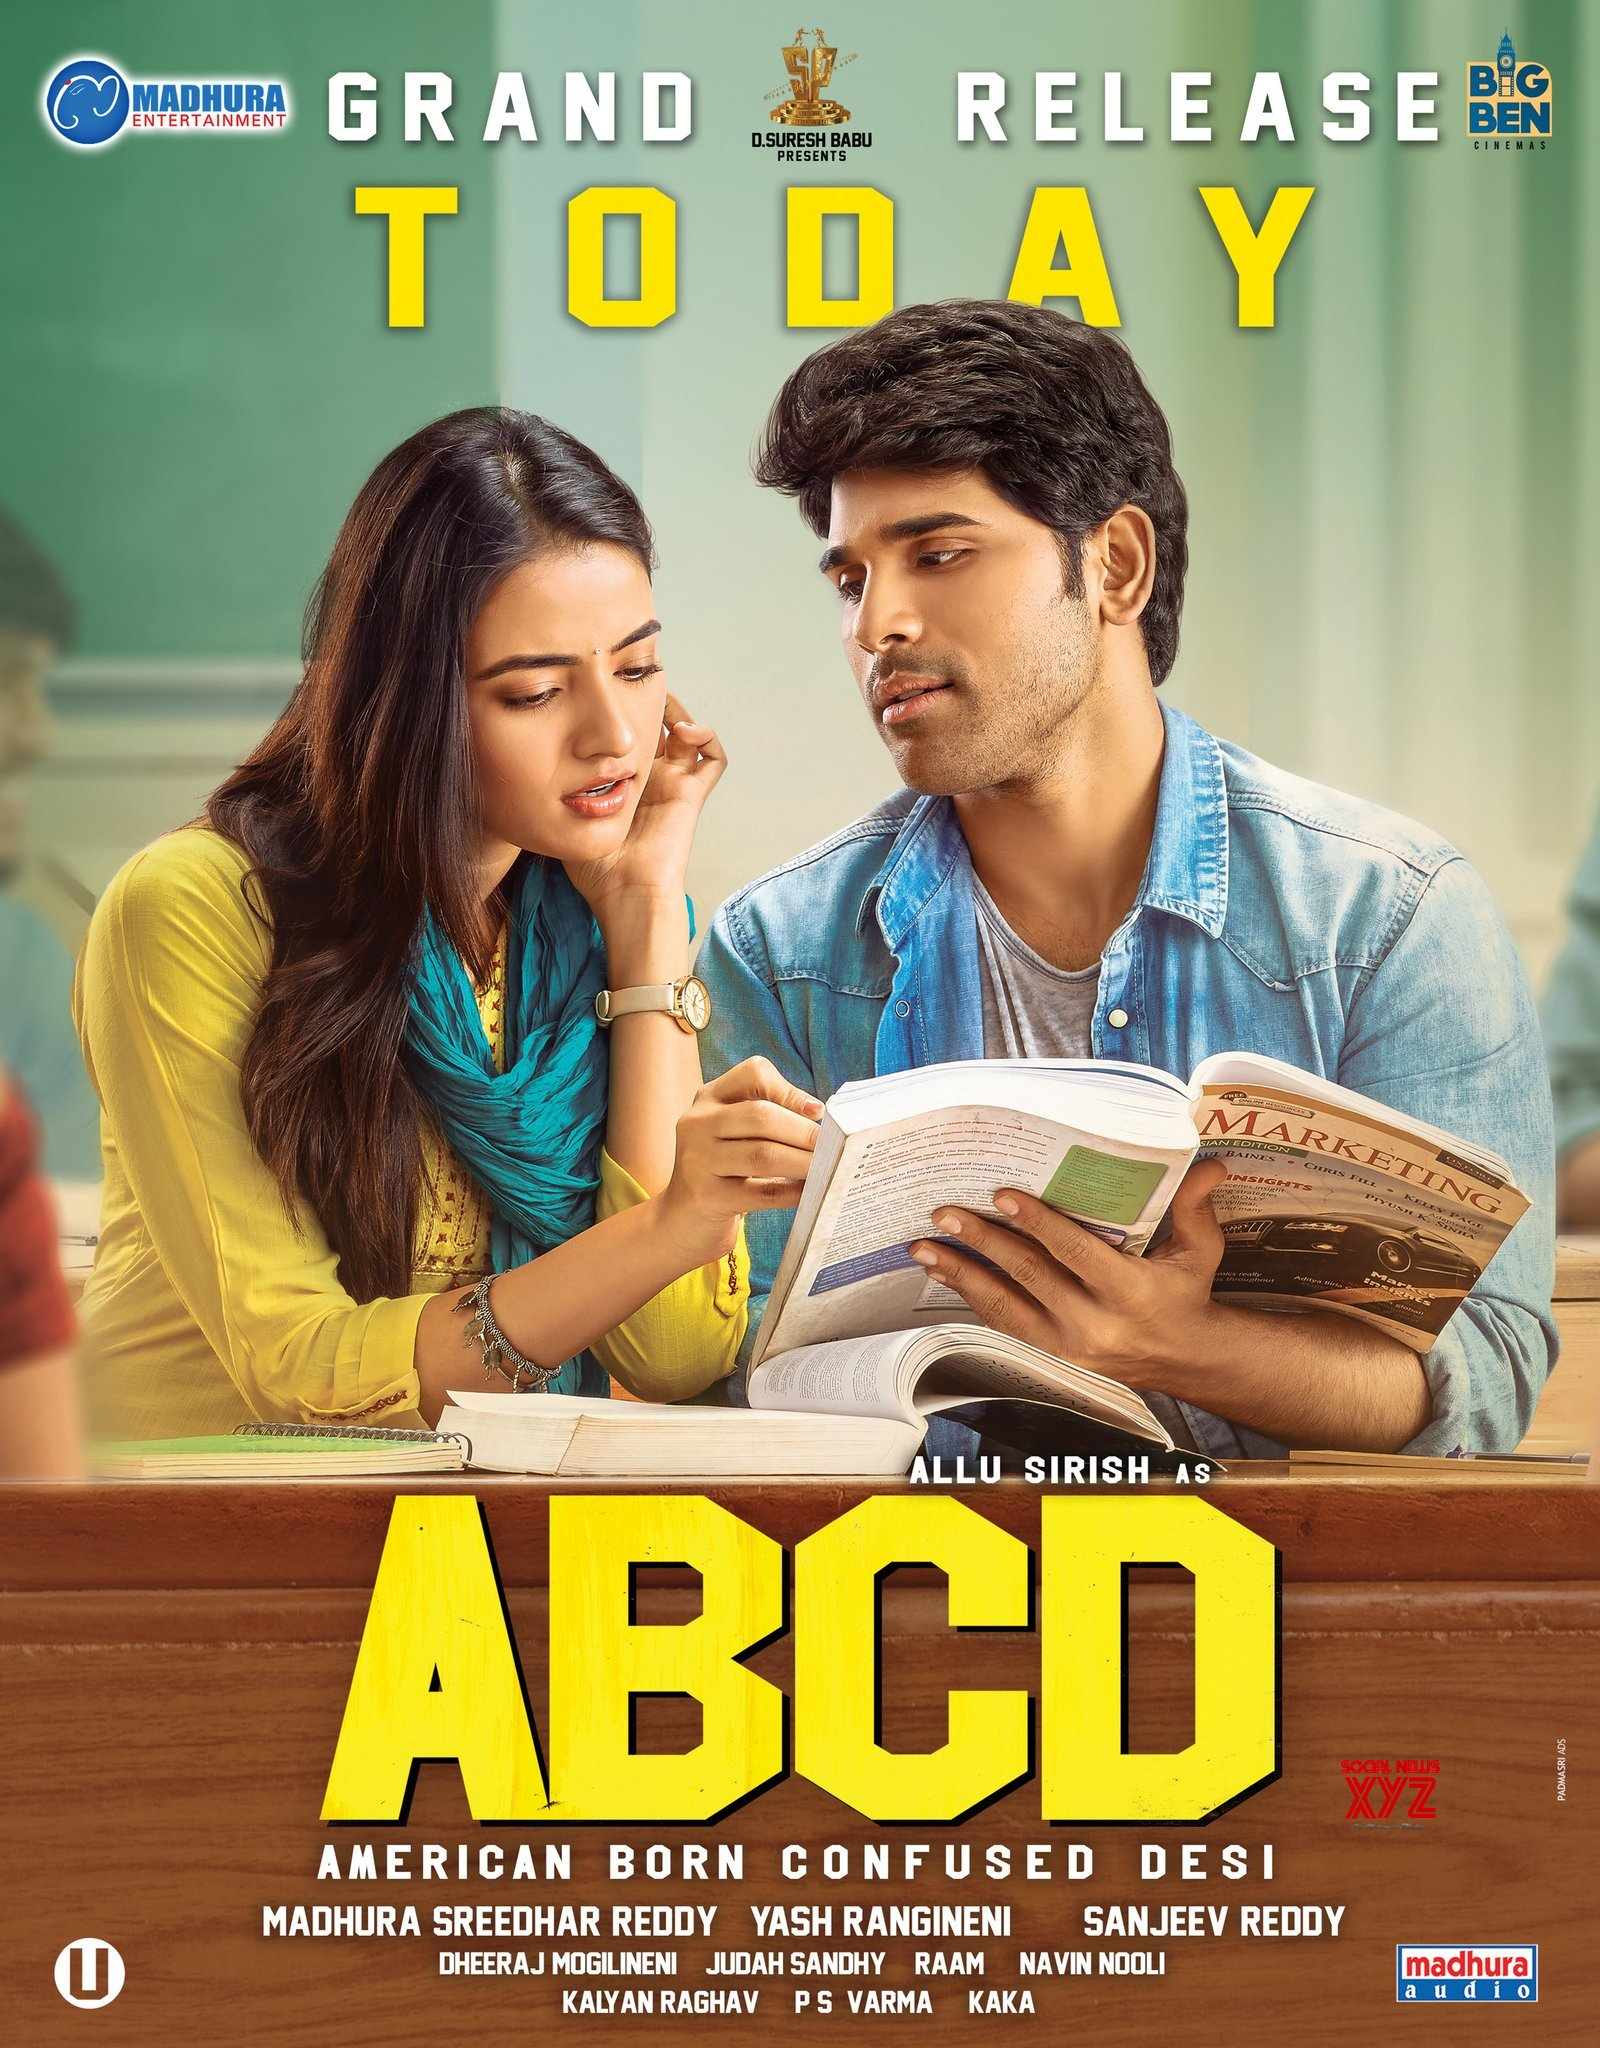 ABCD Movie Grand Release Today Poster